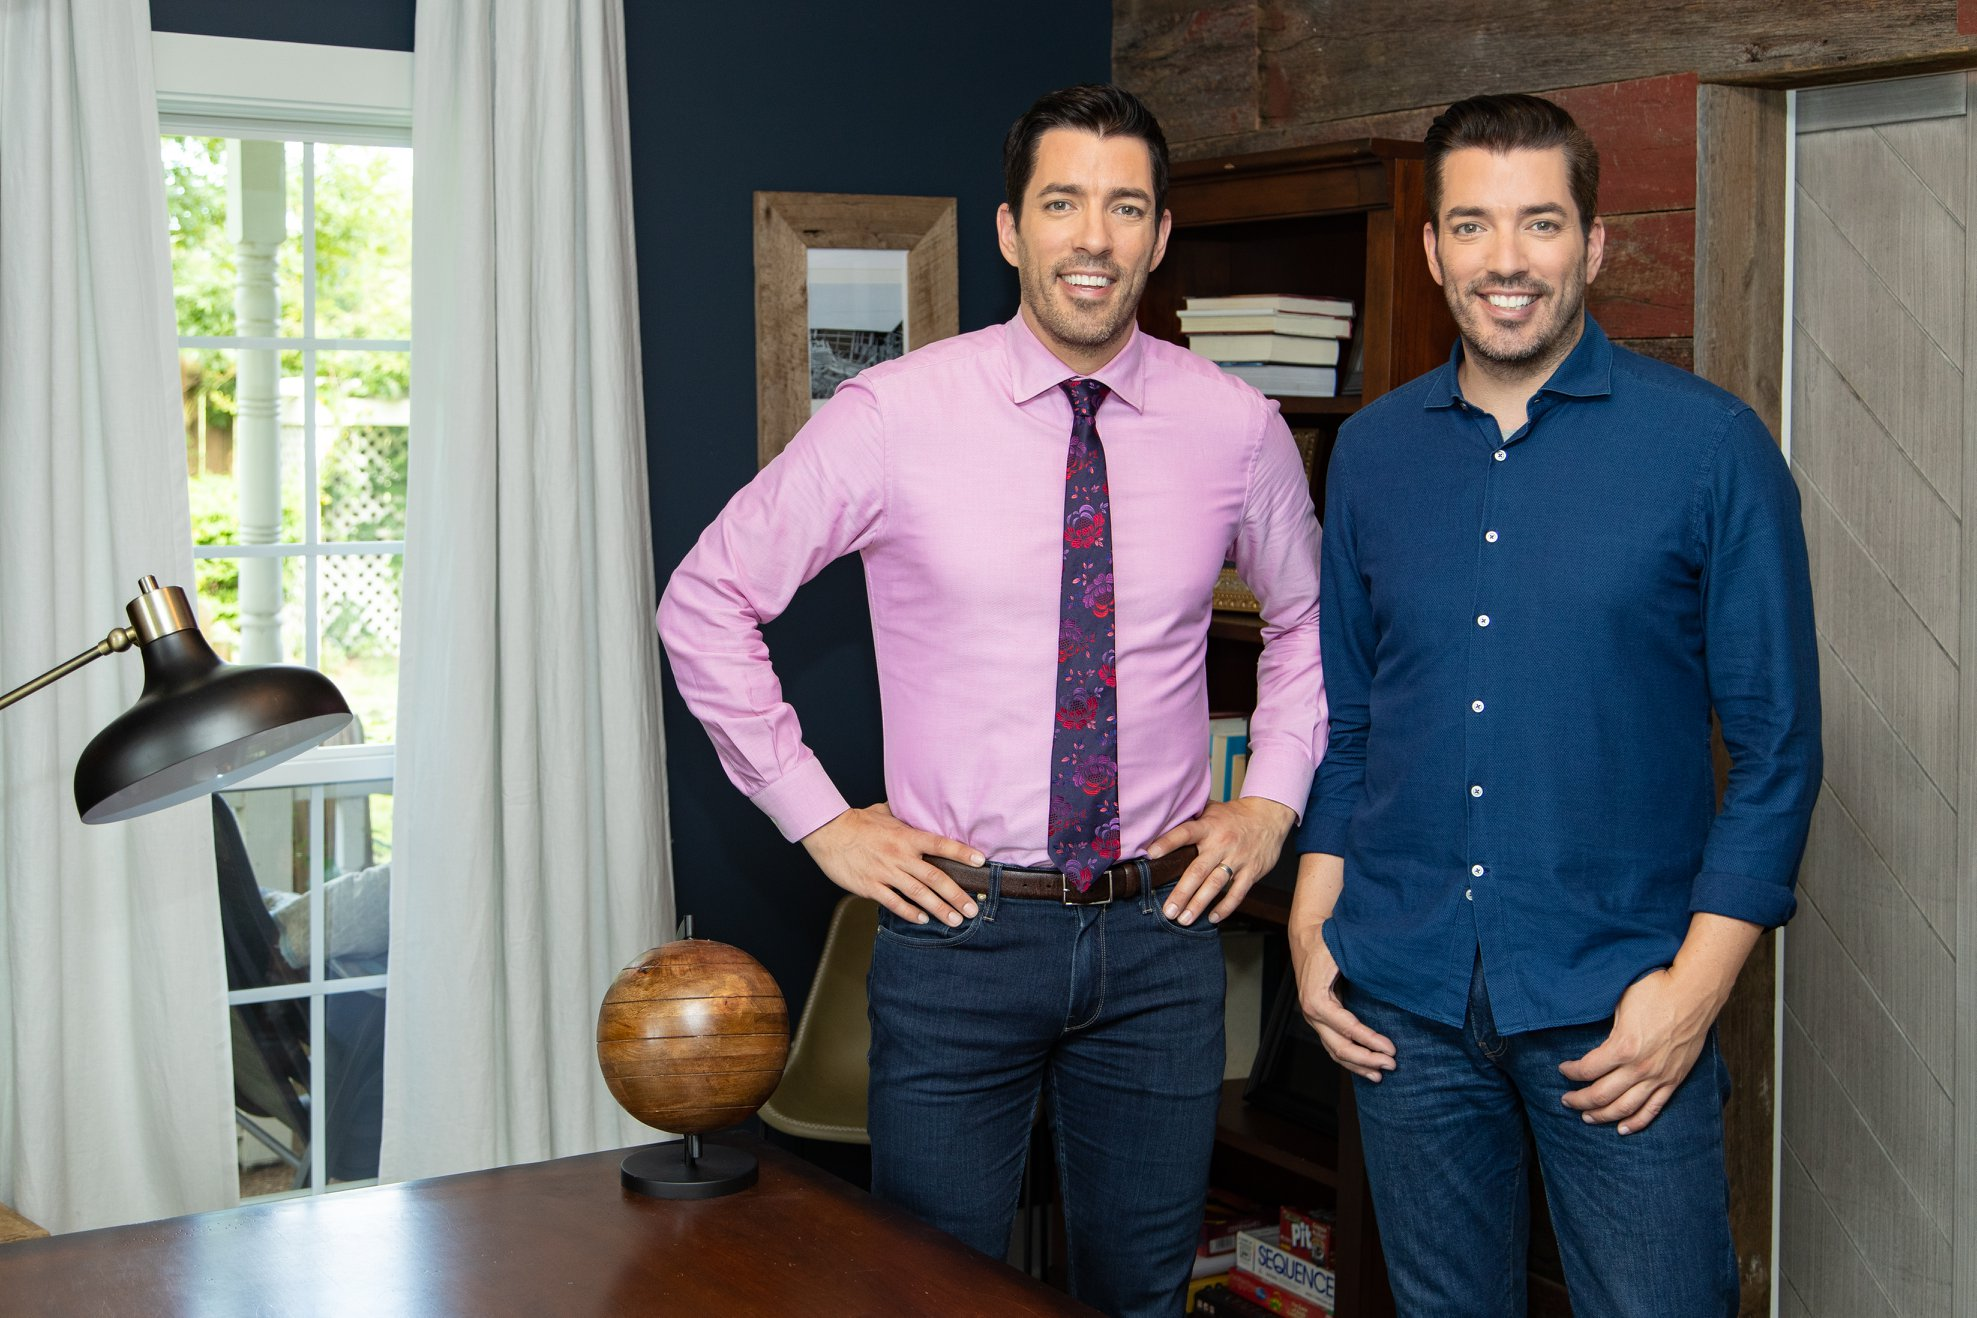 Property Brothers Want To Renovate Gta Residences Into Dream Homes